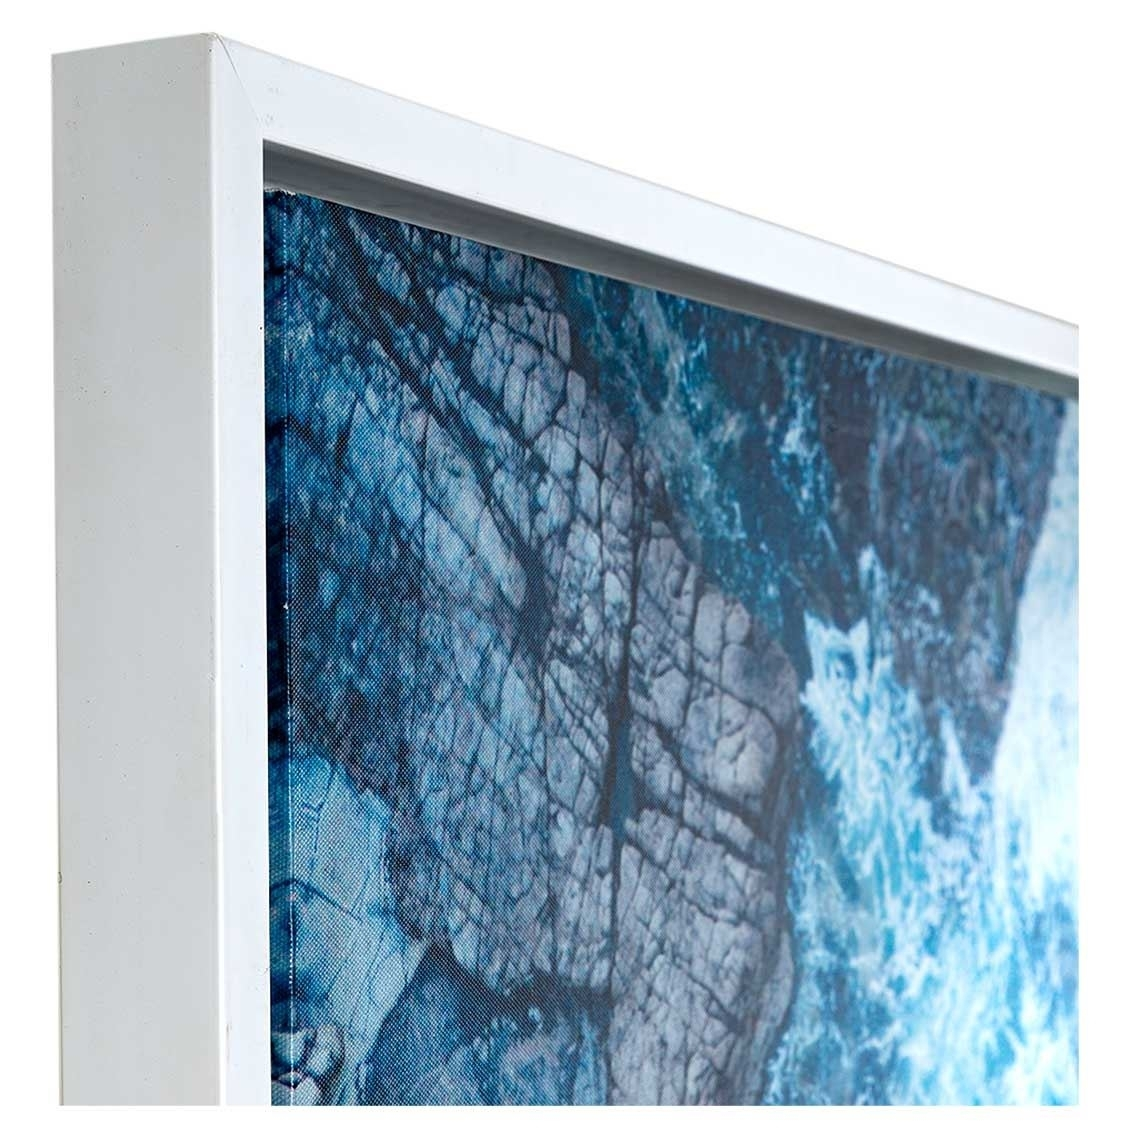 Neeks & Gaston Framed Canvas 120X100Cm Mooloolaba Waves Throughout Most Current Mandurah Canvas Wall Art (View 6 of 15)